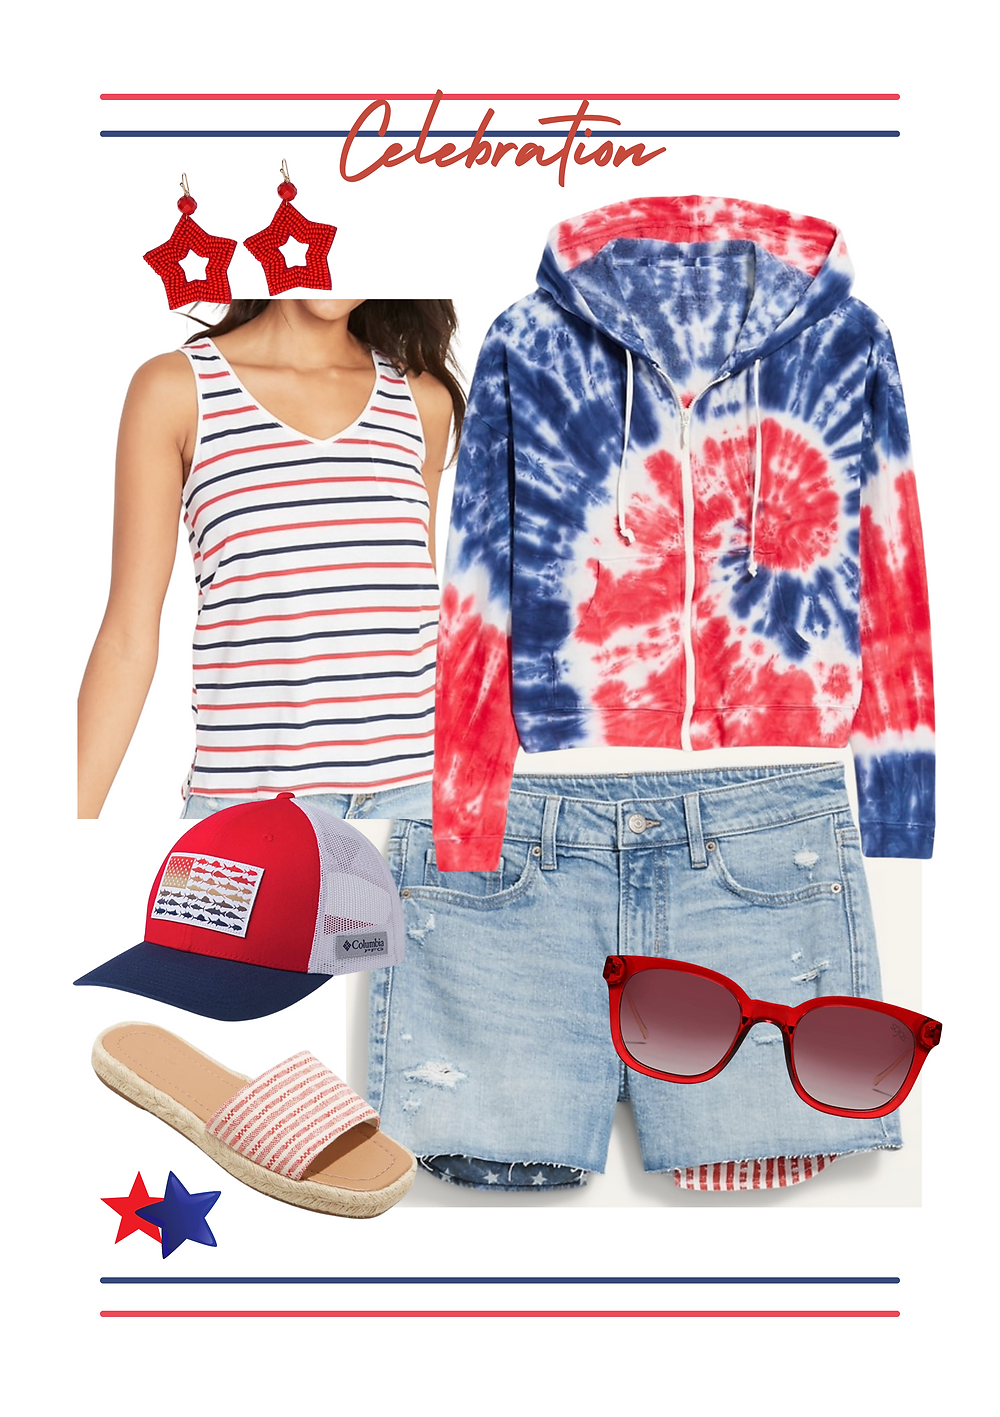 Fourth of July outfit. red white and blue outfit. Patriotic outfit. #holidayOOTD #4thofjulybbq